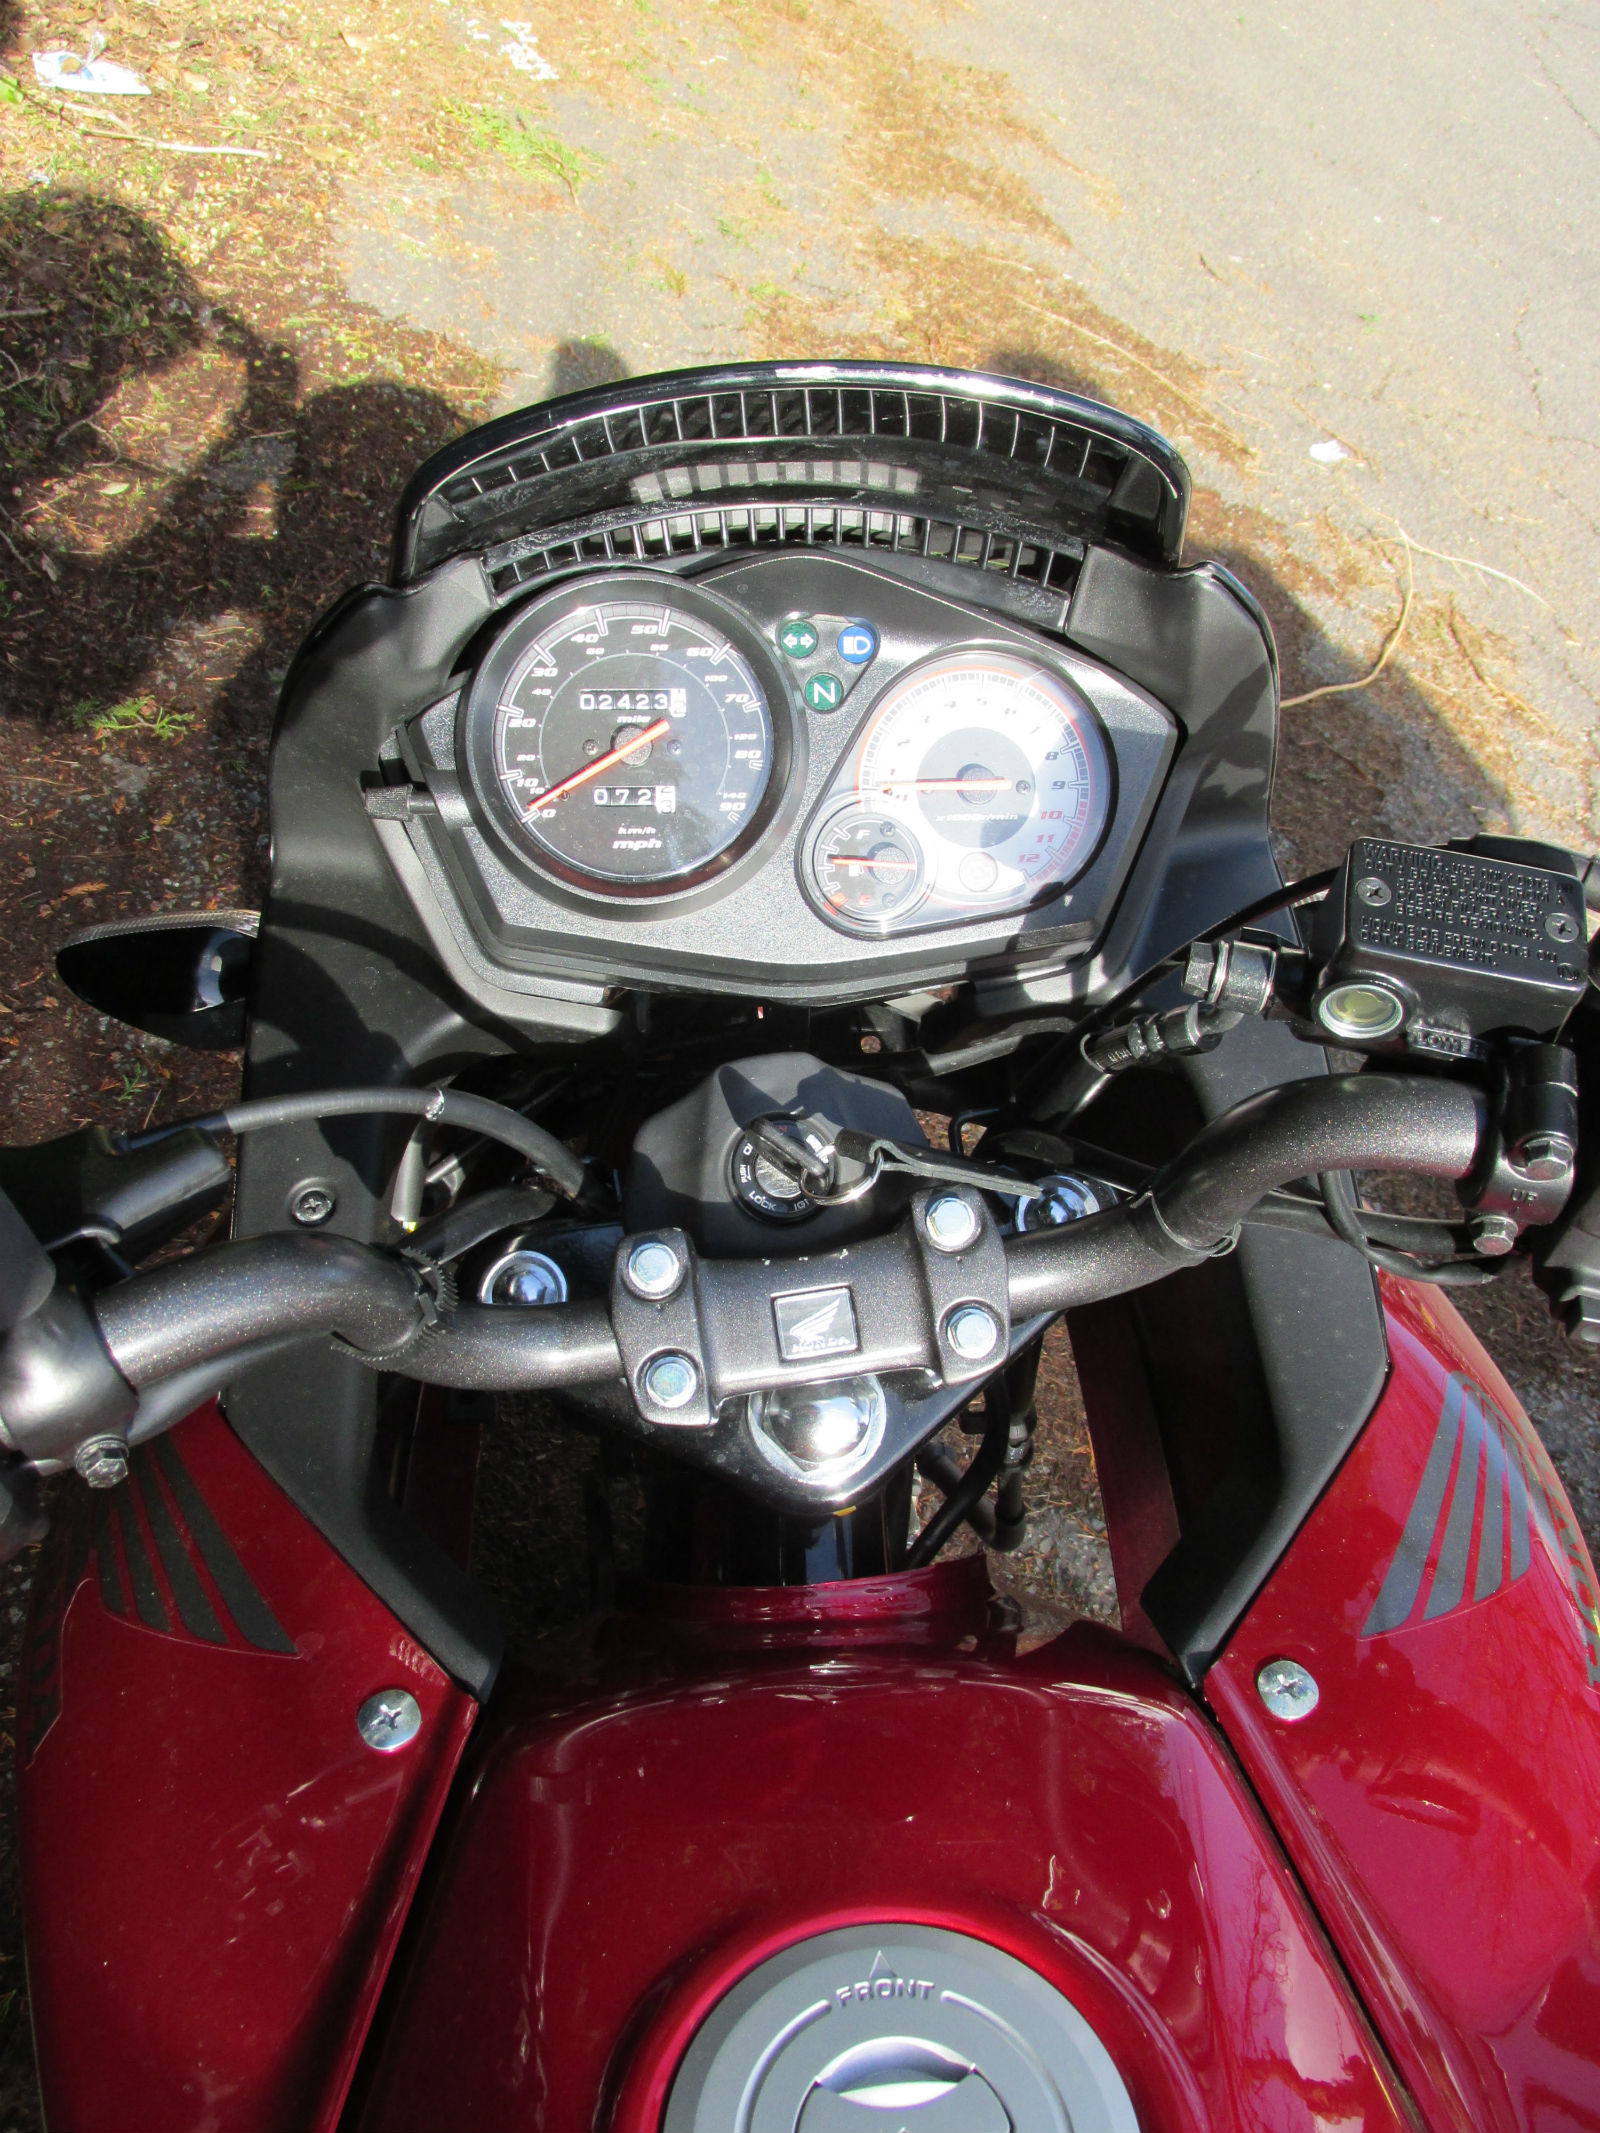 Review: One week with a Honda CBF125